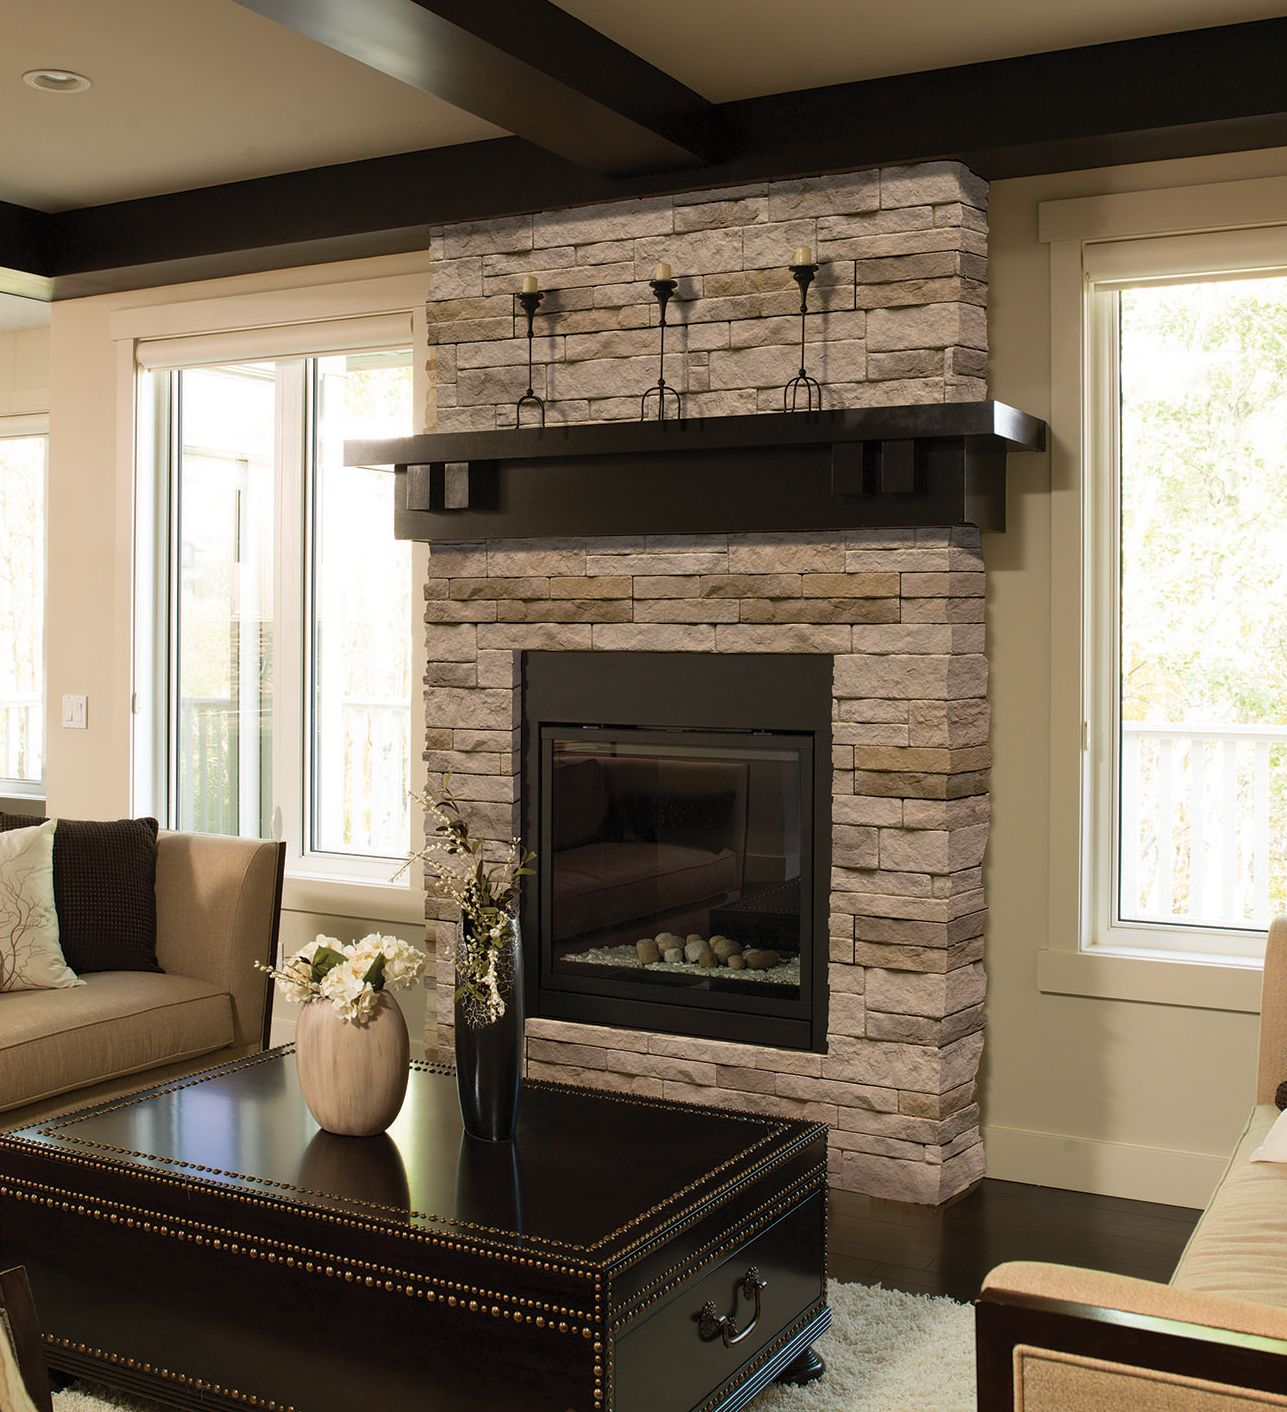 mortarless stone veneer is a great way to update a fireplace http